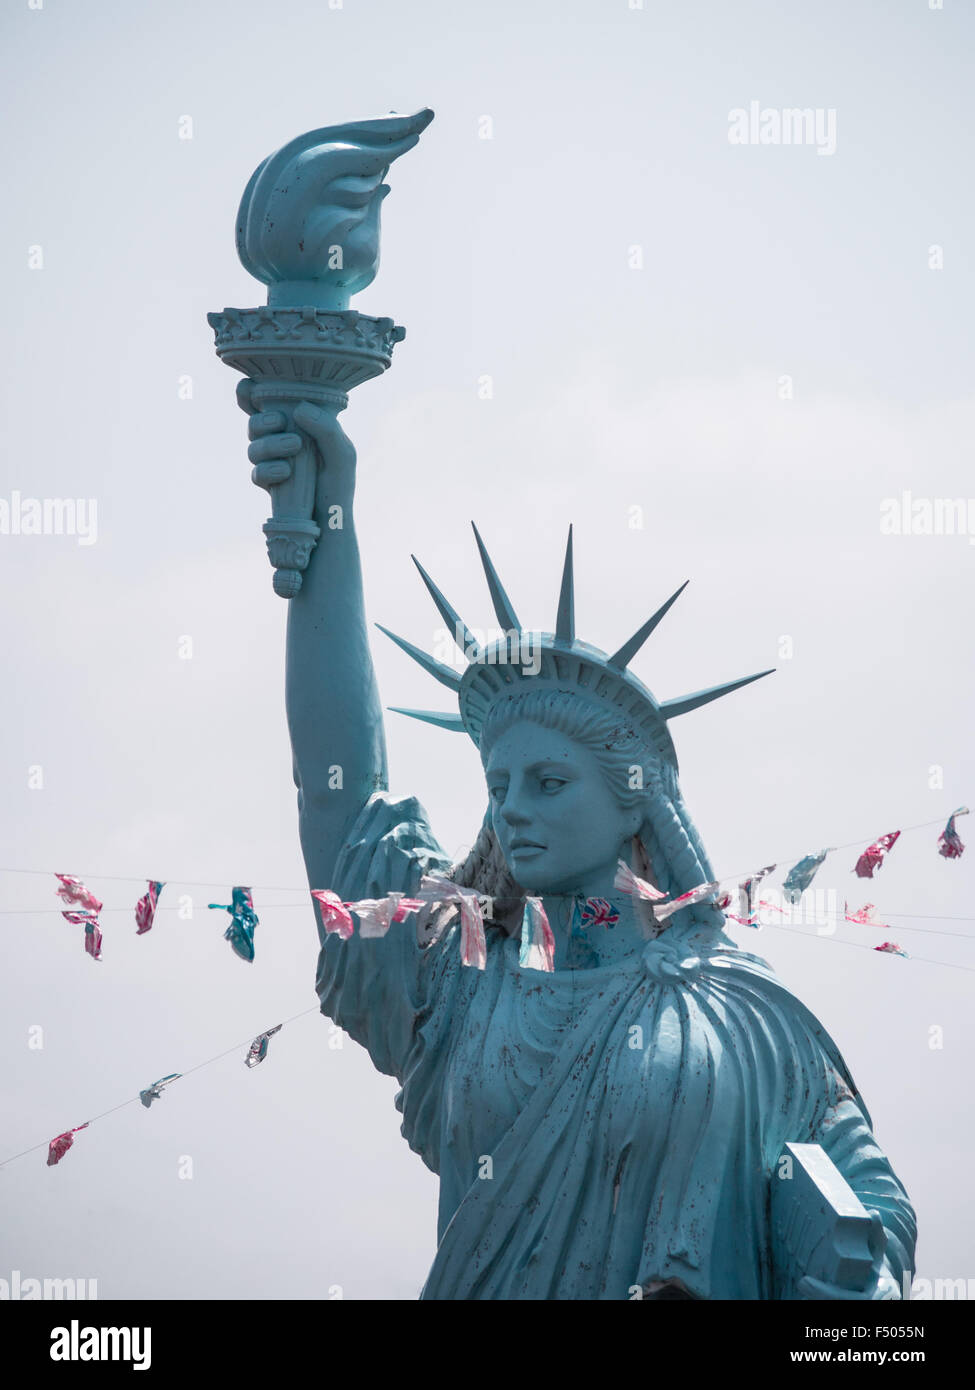 Choking lady liberty - ropes wrapped around the neck of a replica of the Statue of Liberty symbolize loss of power - Stock Image